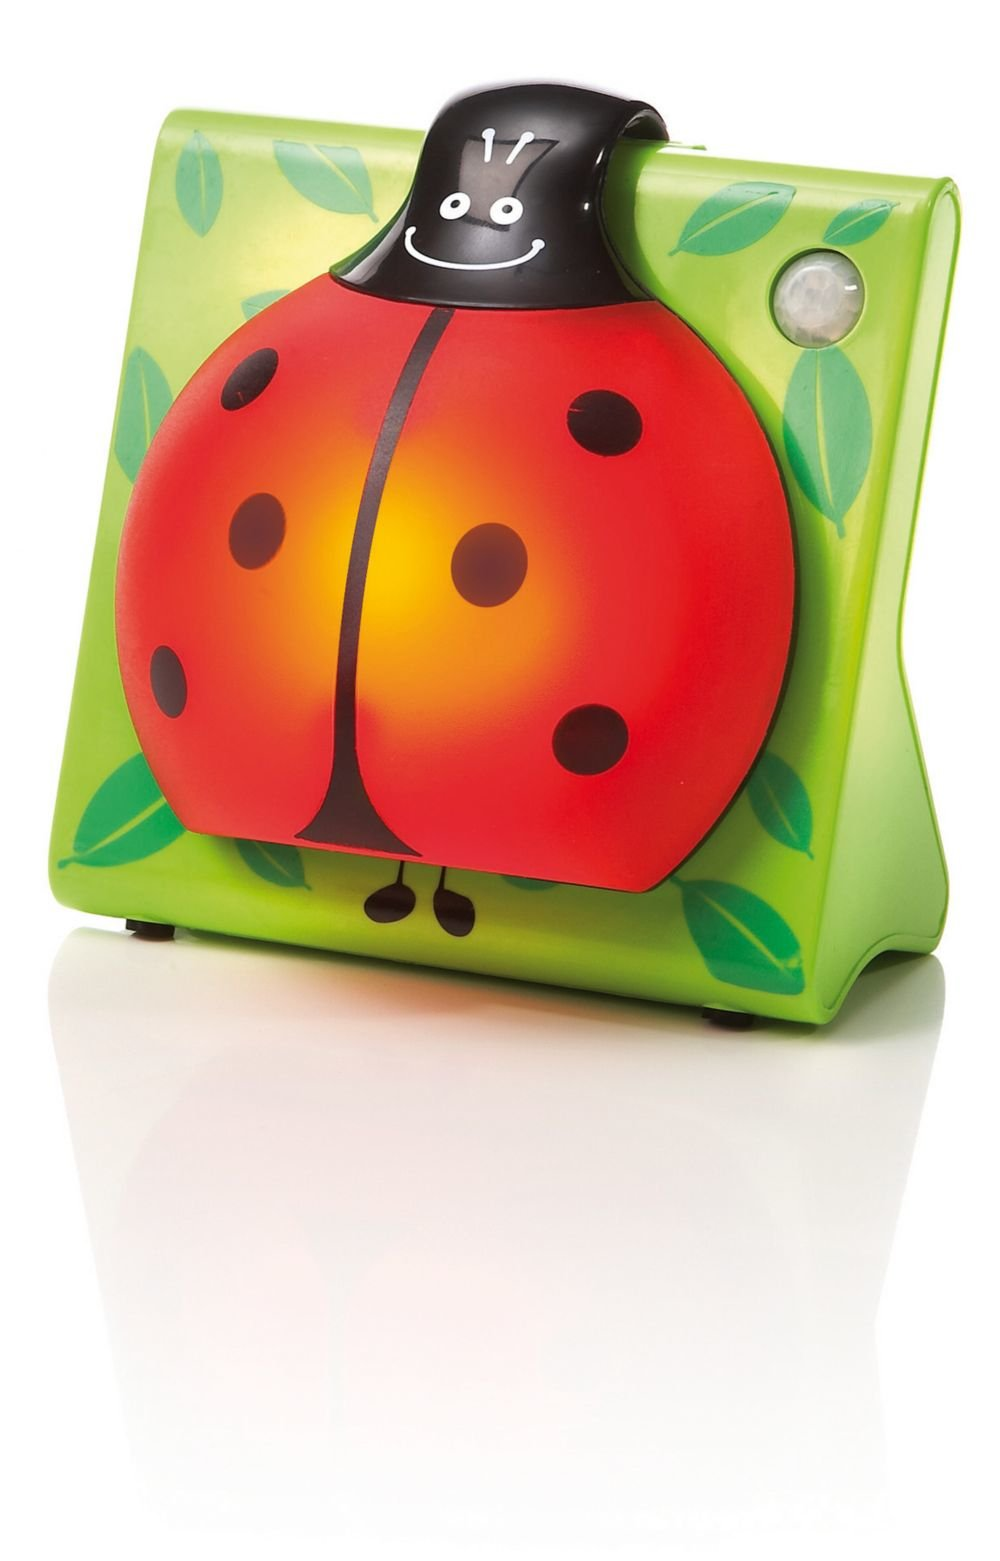 Philips 69112/32/48 Guidelight LED Ladybug Night Light